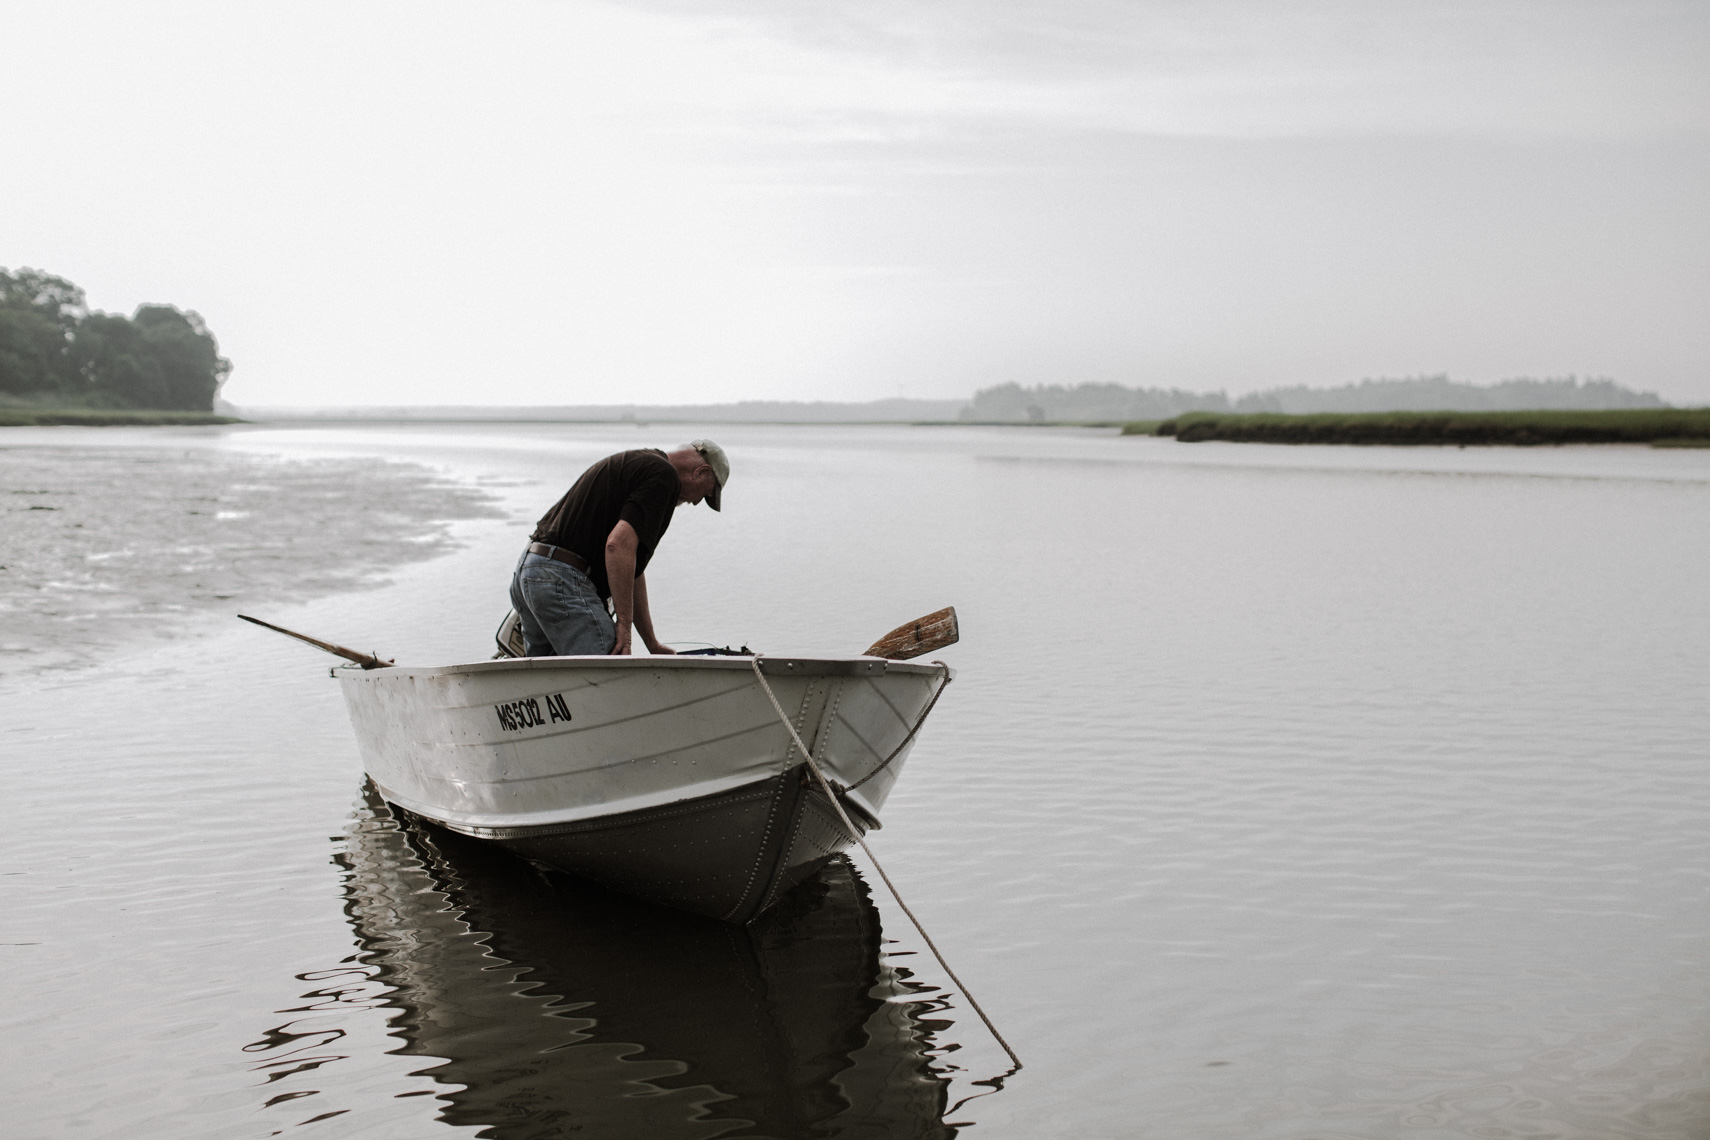 """""""My part is digging the clam, measuring it and bringing it to my boat."""" (Photograph by Matt Kalinowski)"""